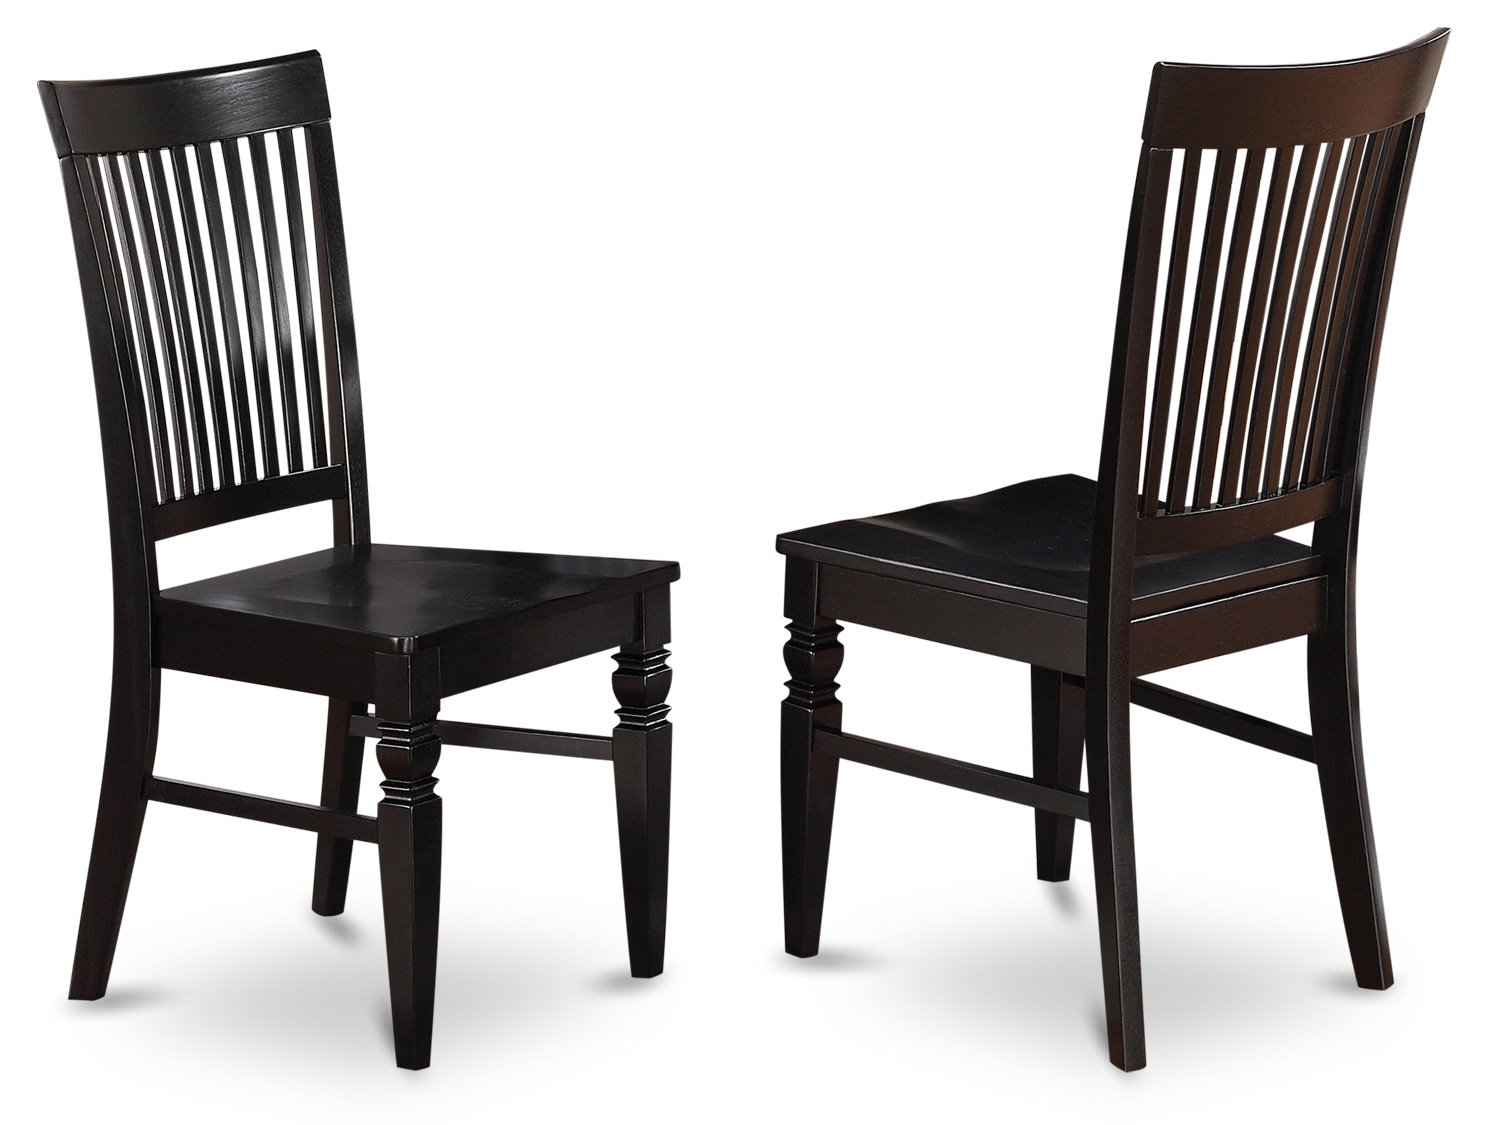 Amazon com east west furniture wec blk w wood seat dining chair set with slatted back black finish set of 2 kitchen dining